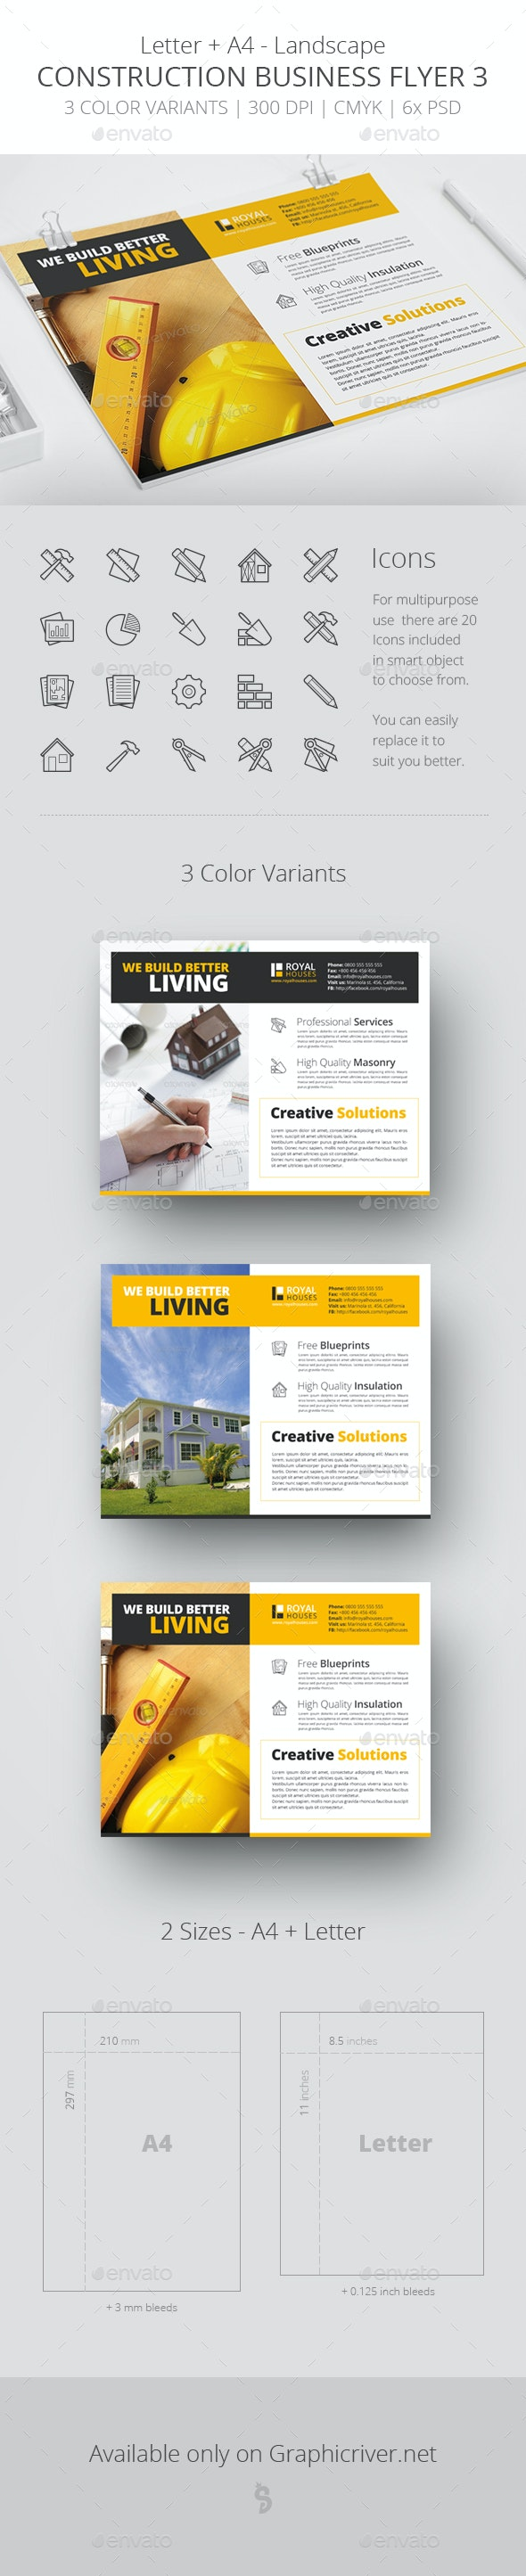 Construction Business Flyer 3 - Letter + A4 - Corporate Flyers